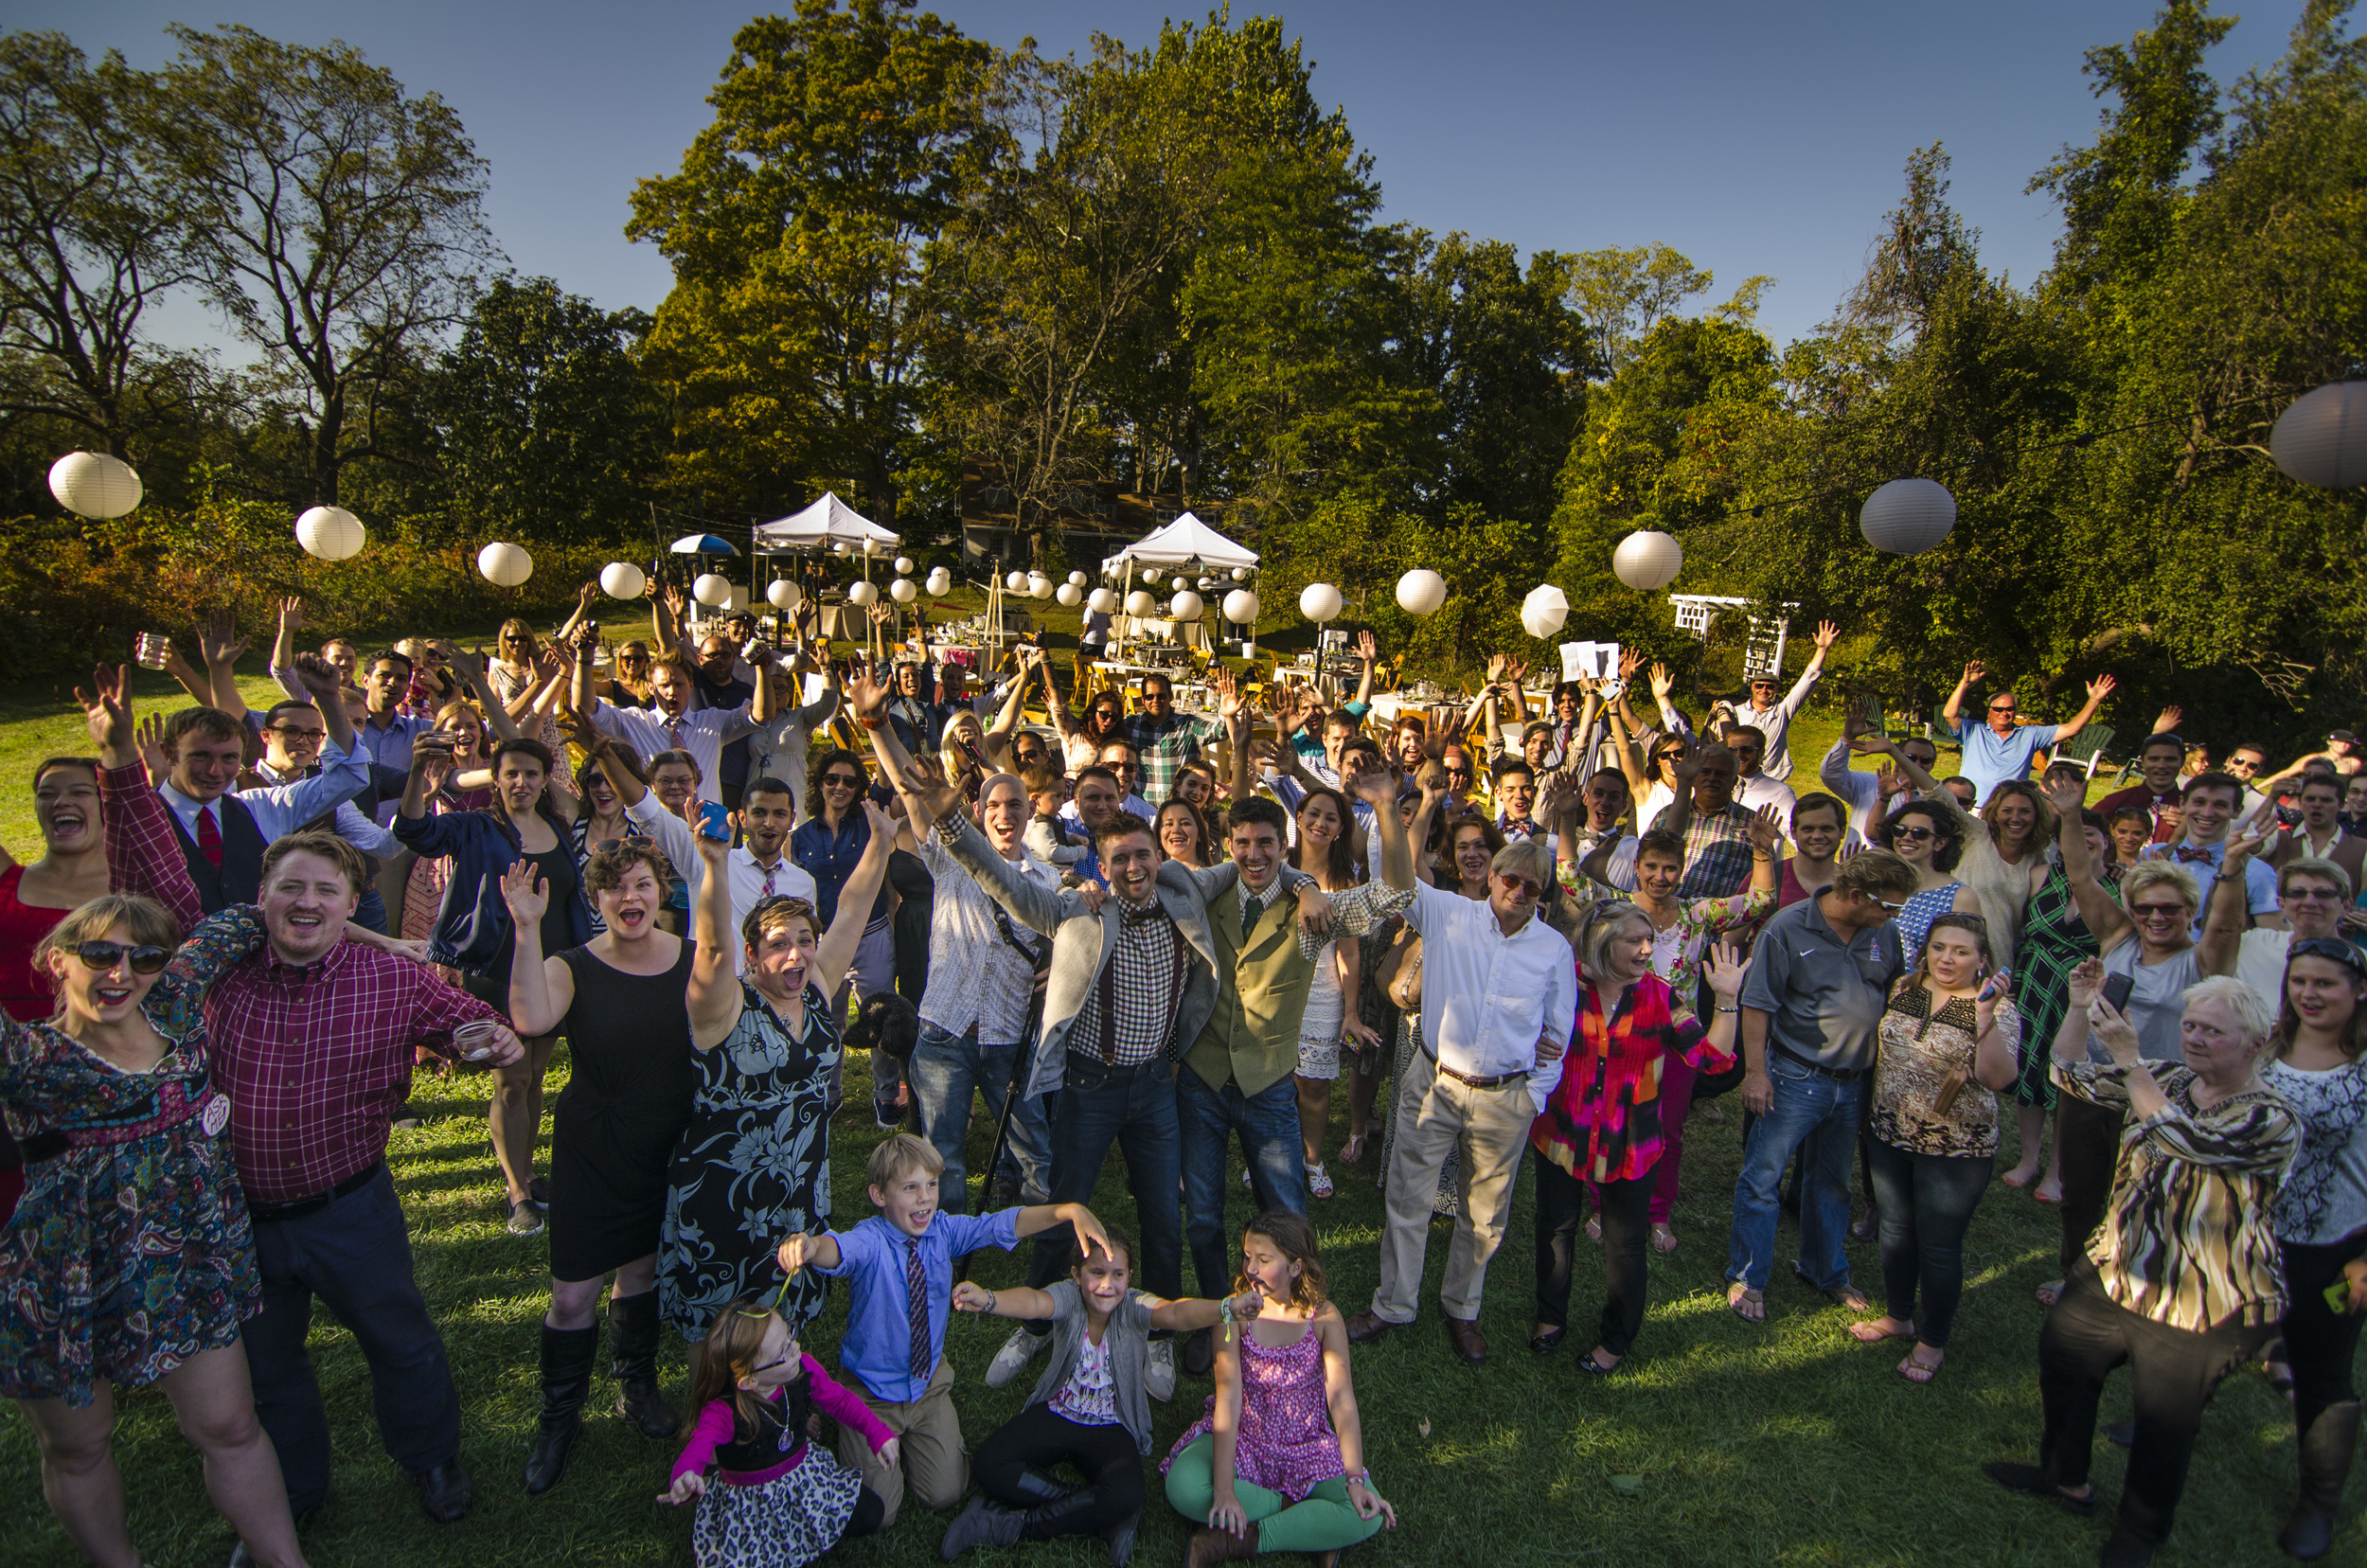 2014 wedding on the Bowling Green, taken from the outdoor stage. The Bowling Green can accommodate up to 400 guests.